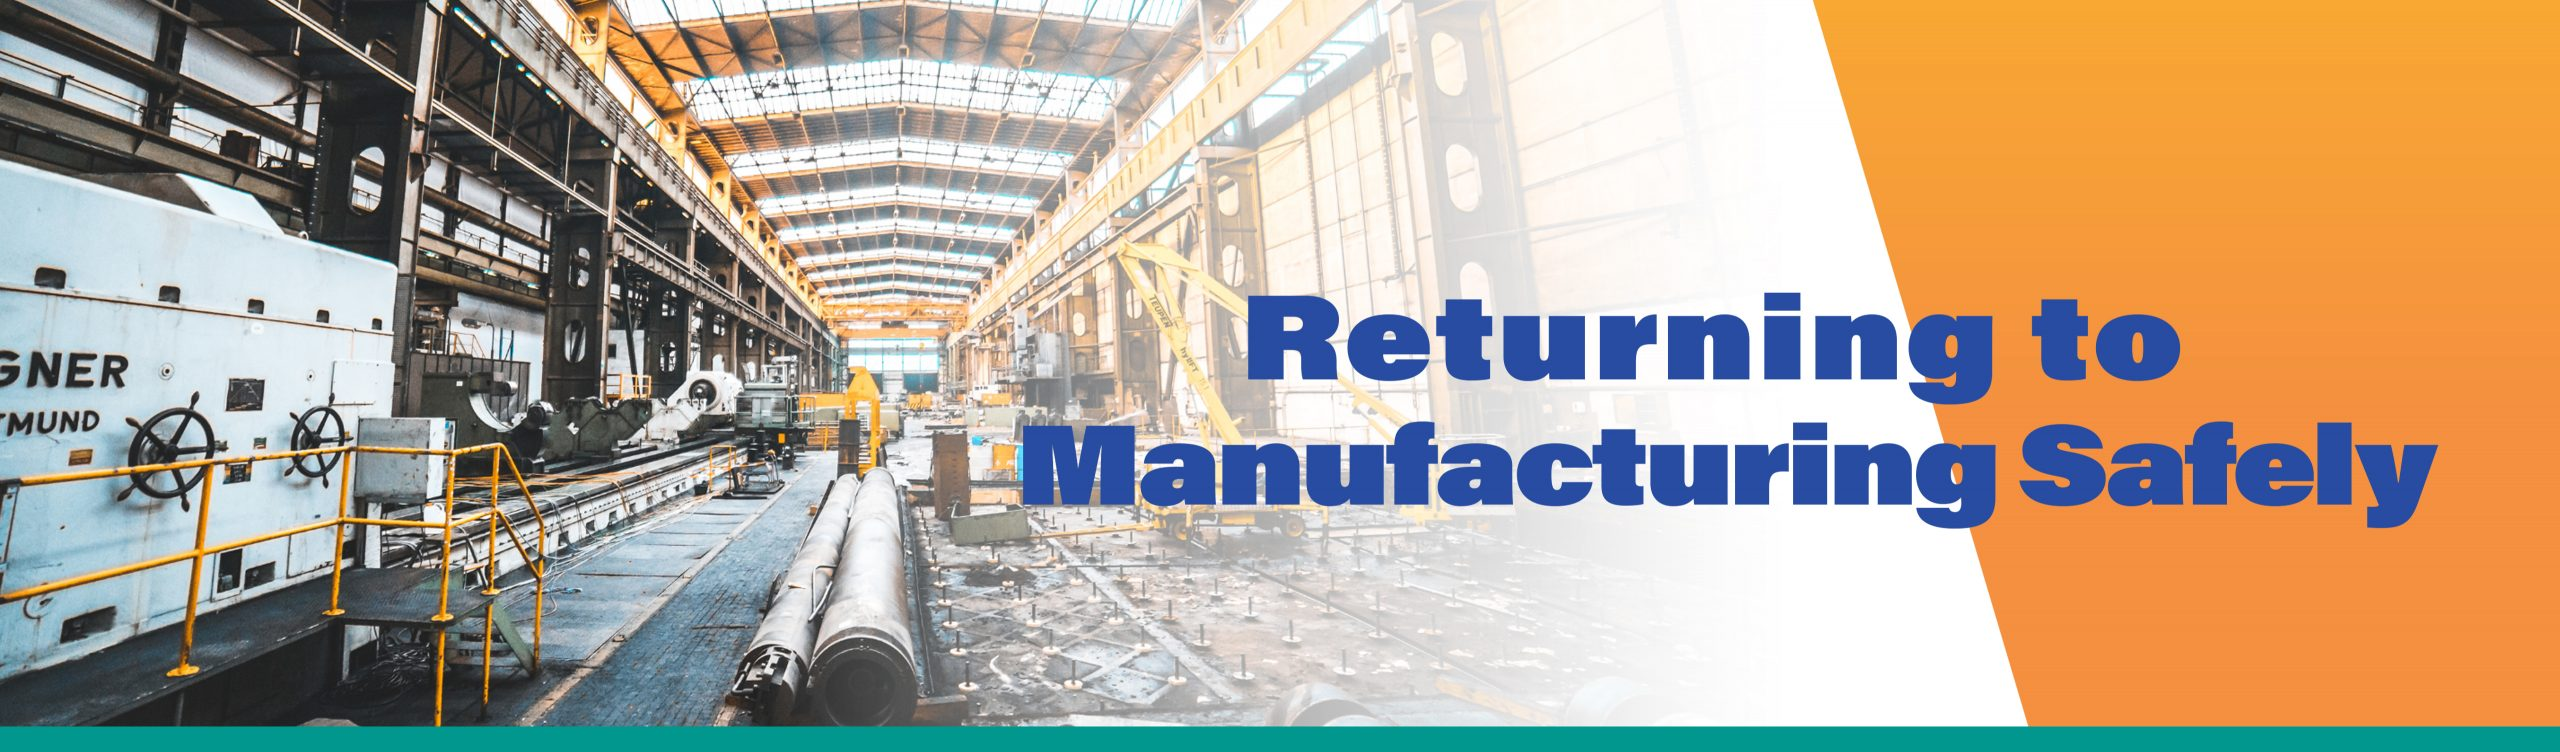 Returning to Manufacturing Safely Decorative Banner Image